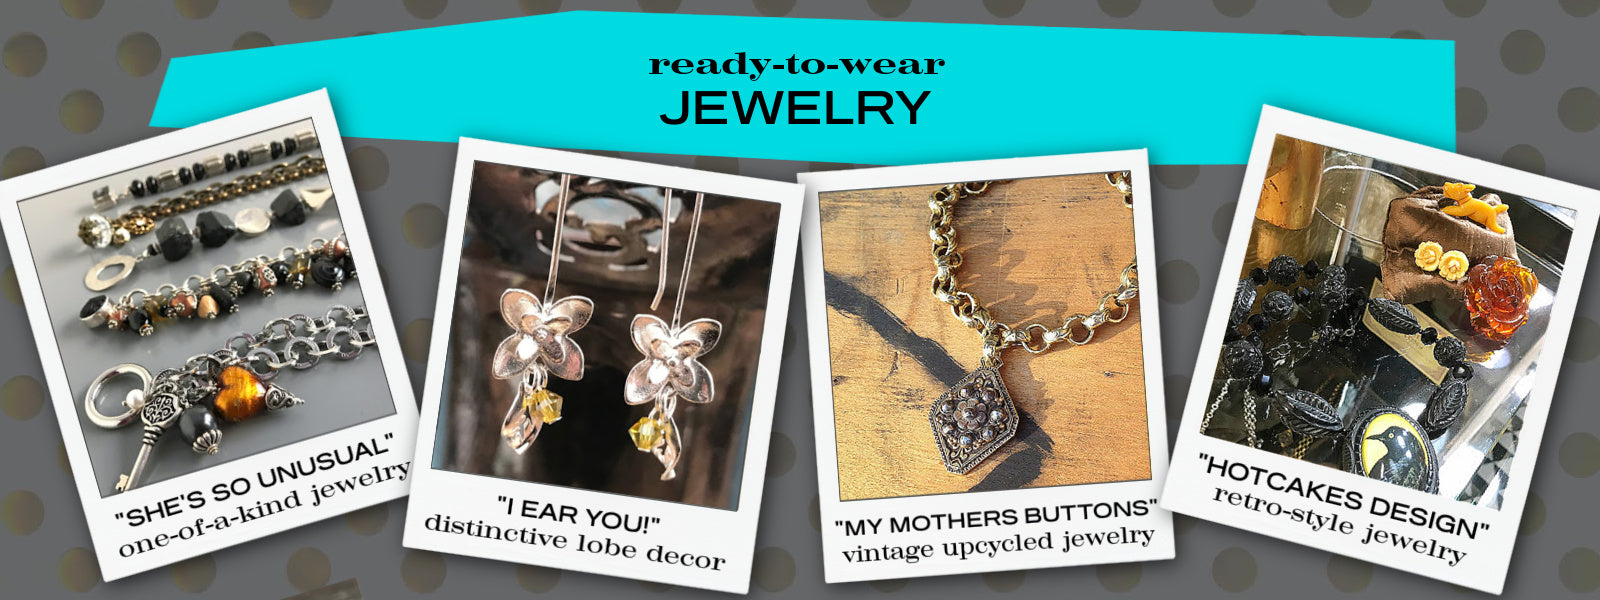 Suzie Q Studio has a huge selection of ready-to-wear jewelry. From her own Suzie Q Luxe lines of one-of-a-kind jewelry to My Mothers Buttons vintage upcycled jewery, Hotcakes Design retro-style jewelry, and many more lines to come.